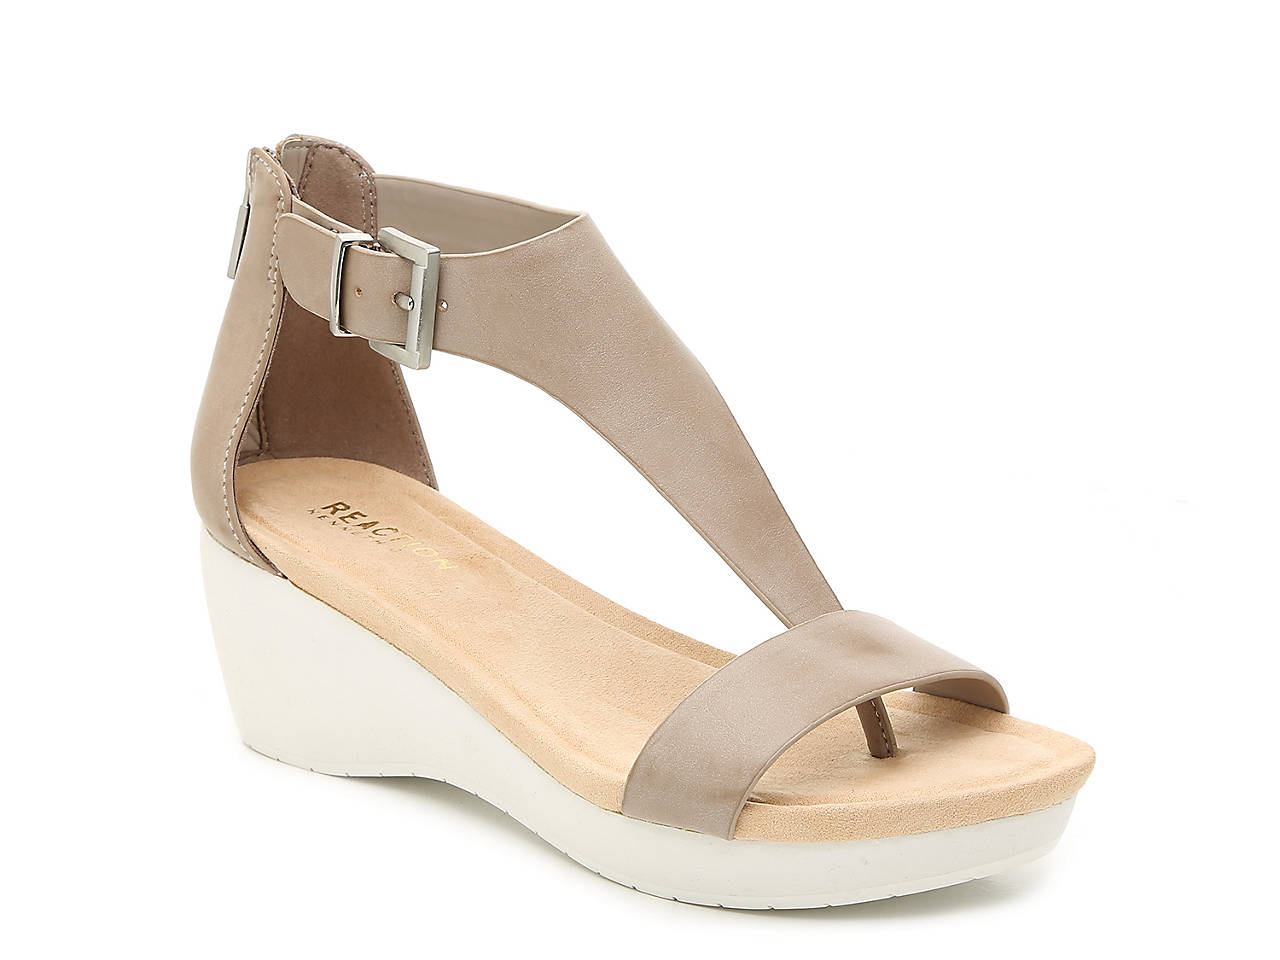 24d1871f1 Kenneth Cole Reaction New Gal Wedge Sandal Women s Shoes